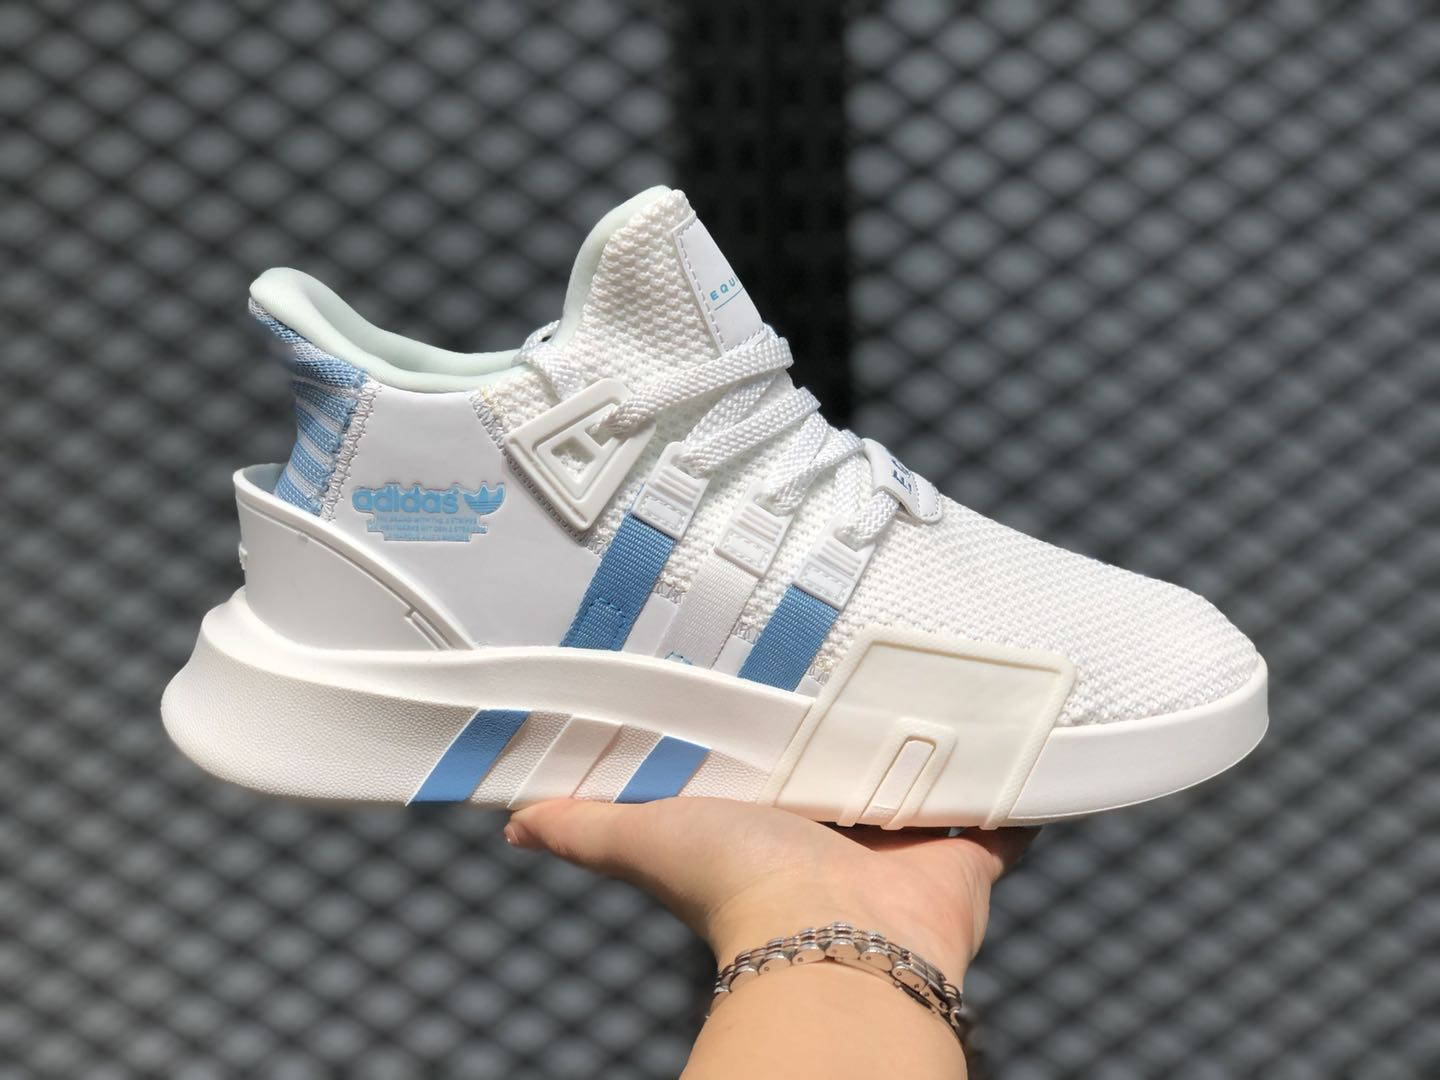 Adidas EQT BASK ADV Cloud White/Blue Running Shoes On Sale FV4536